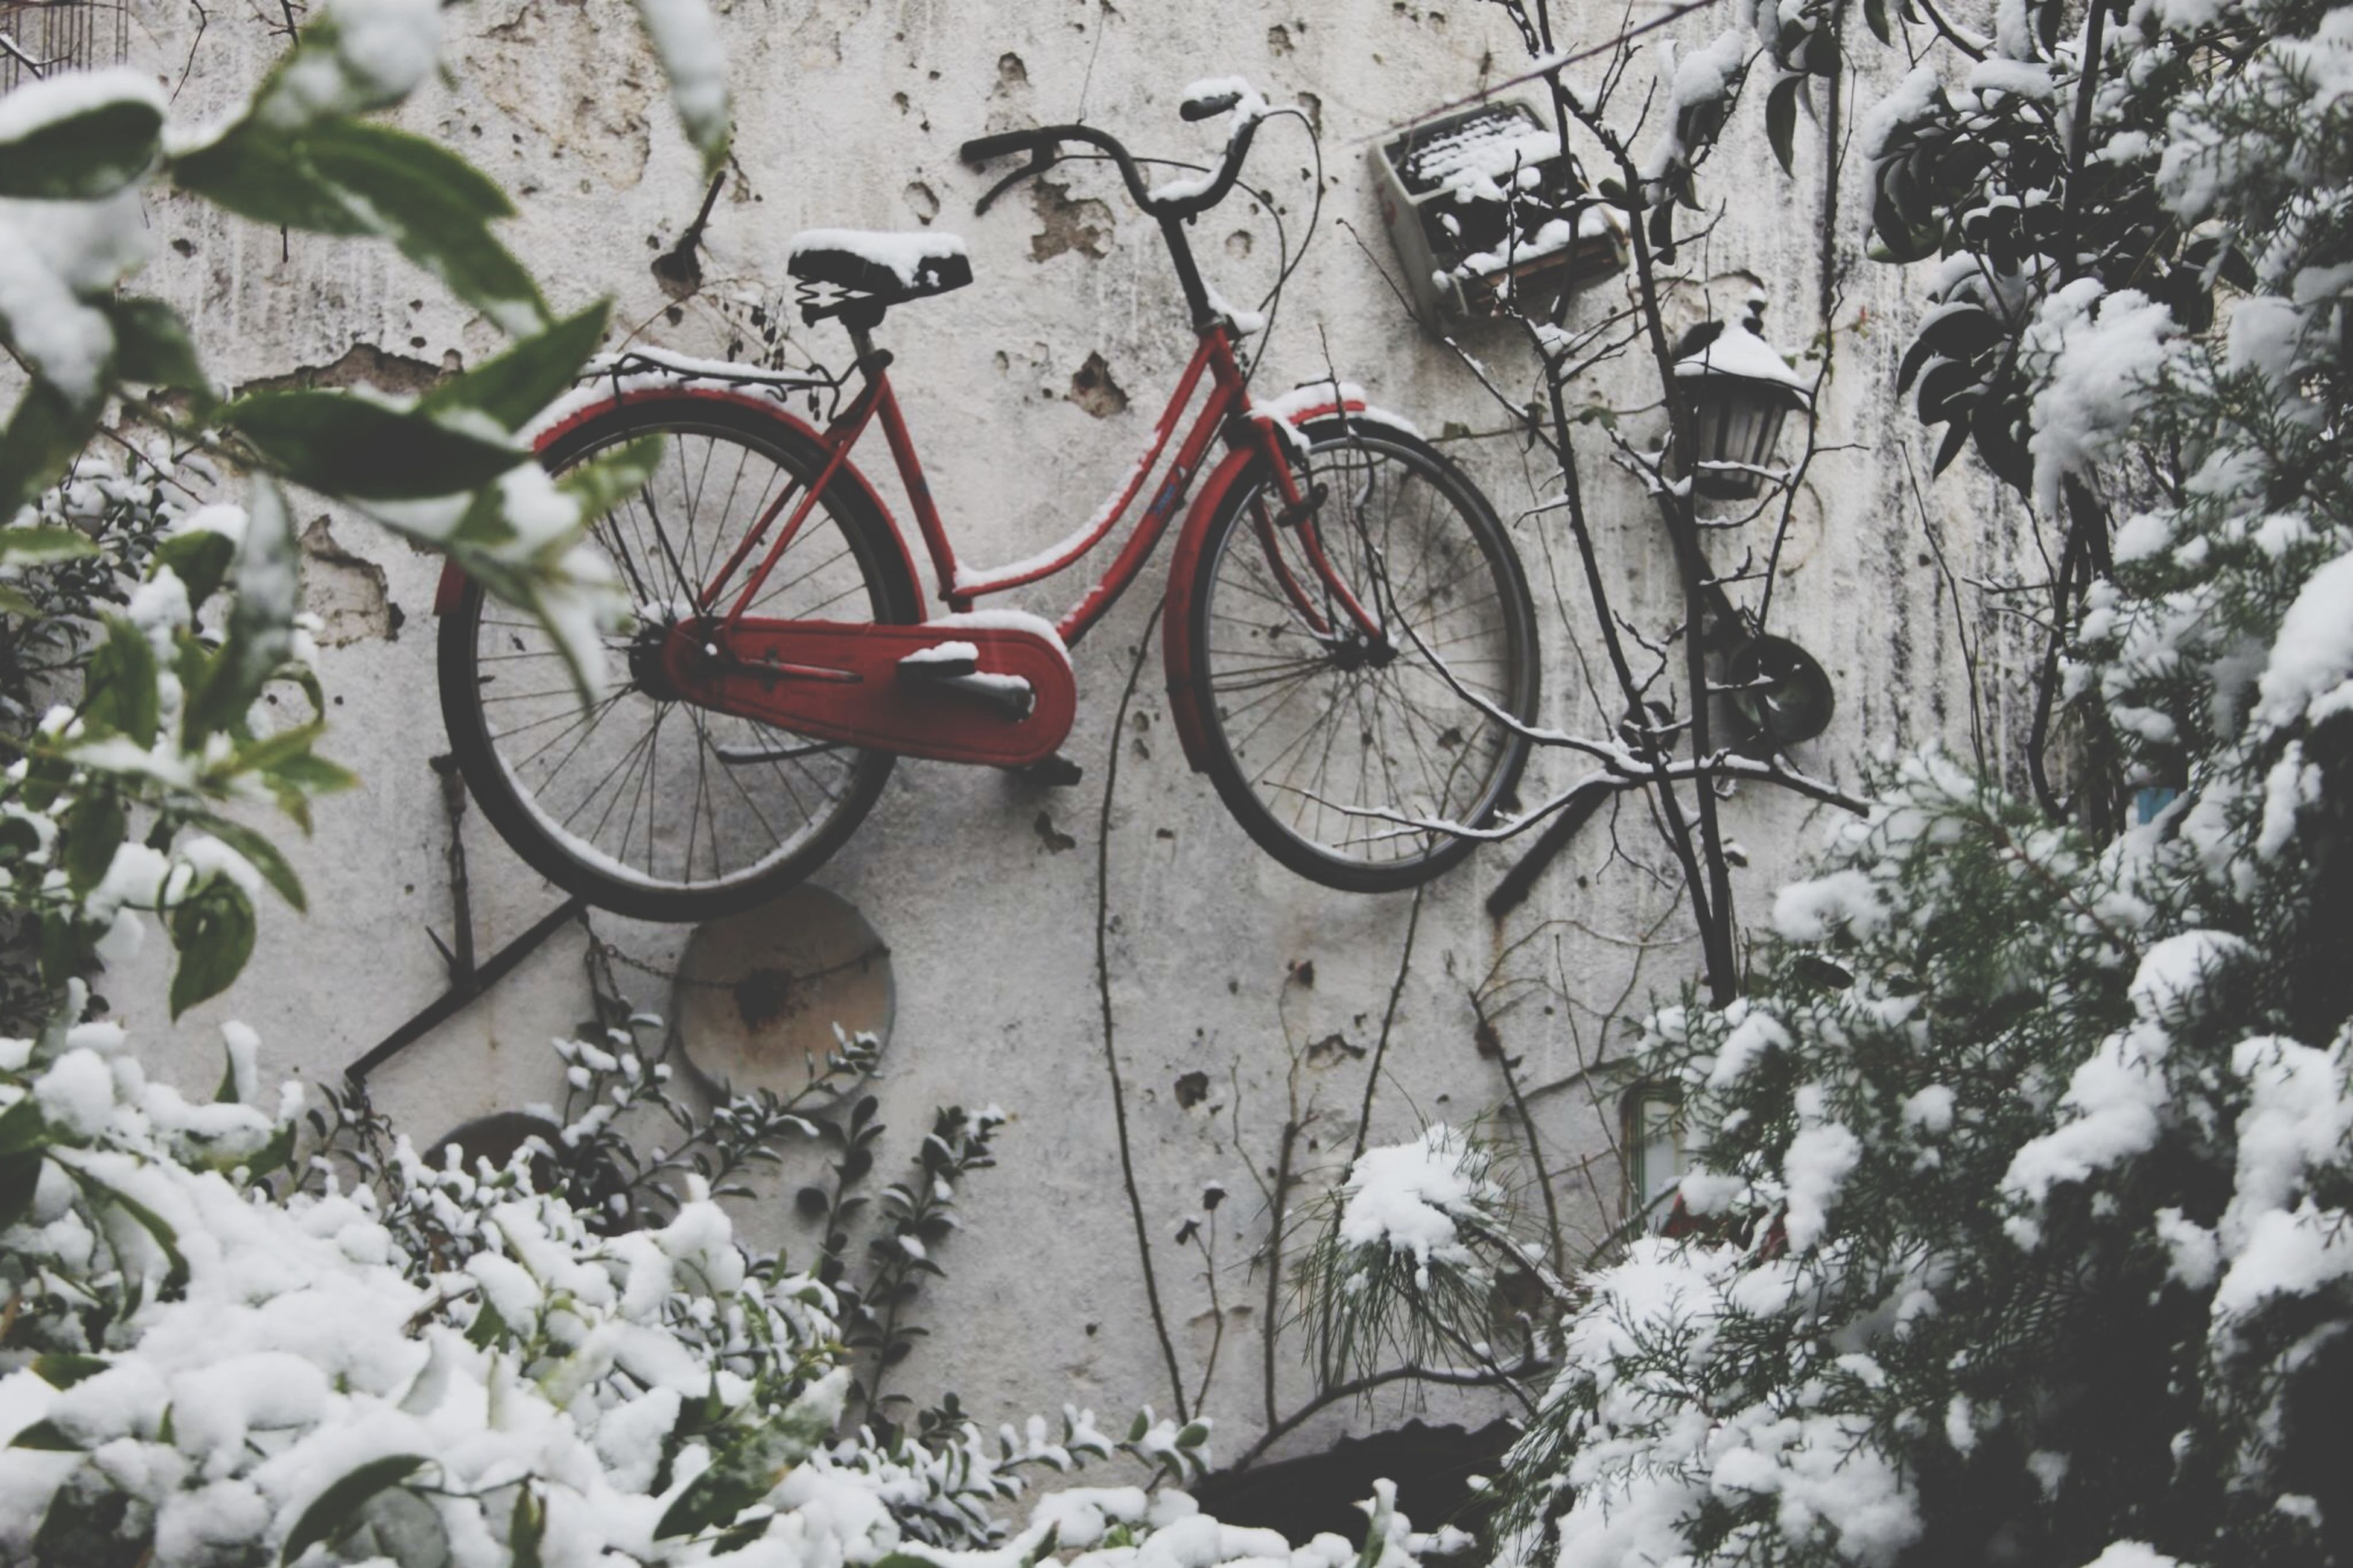 bicycle, transportation, land vehicle, mode of transport, stationary, parking, parked, plant, day, outdoors, no people, high angle view, wall - building feature, street, nature, growth, sunlight, wheel, snow, flower